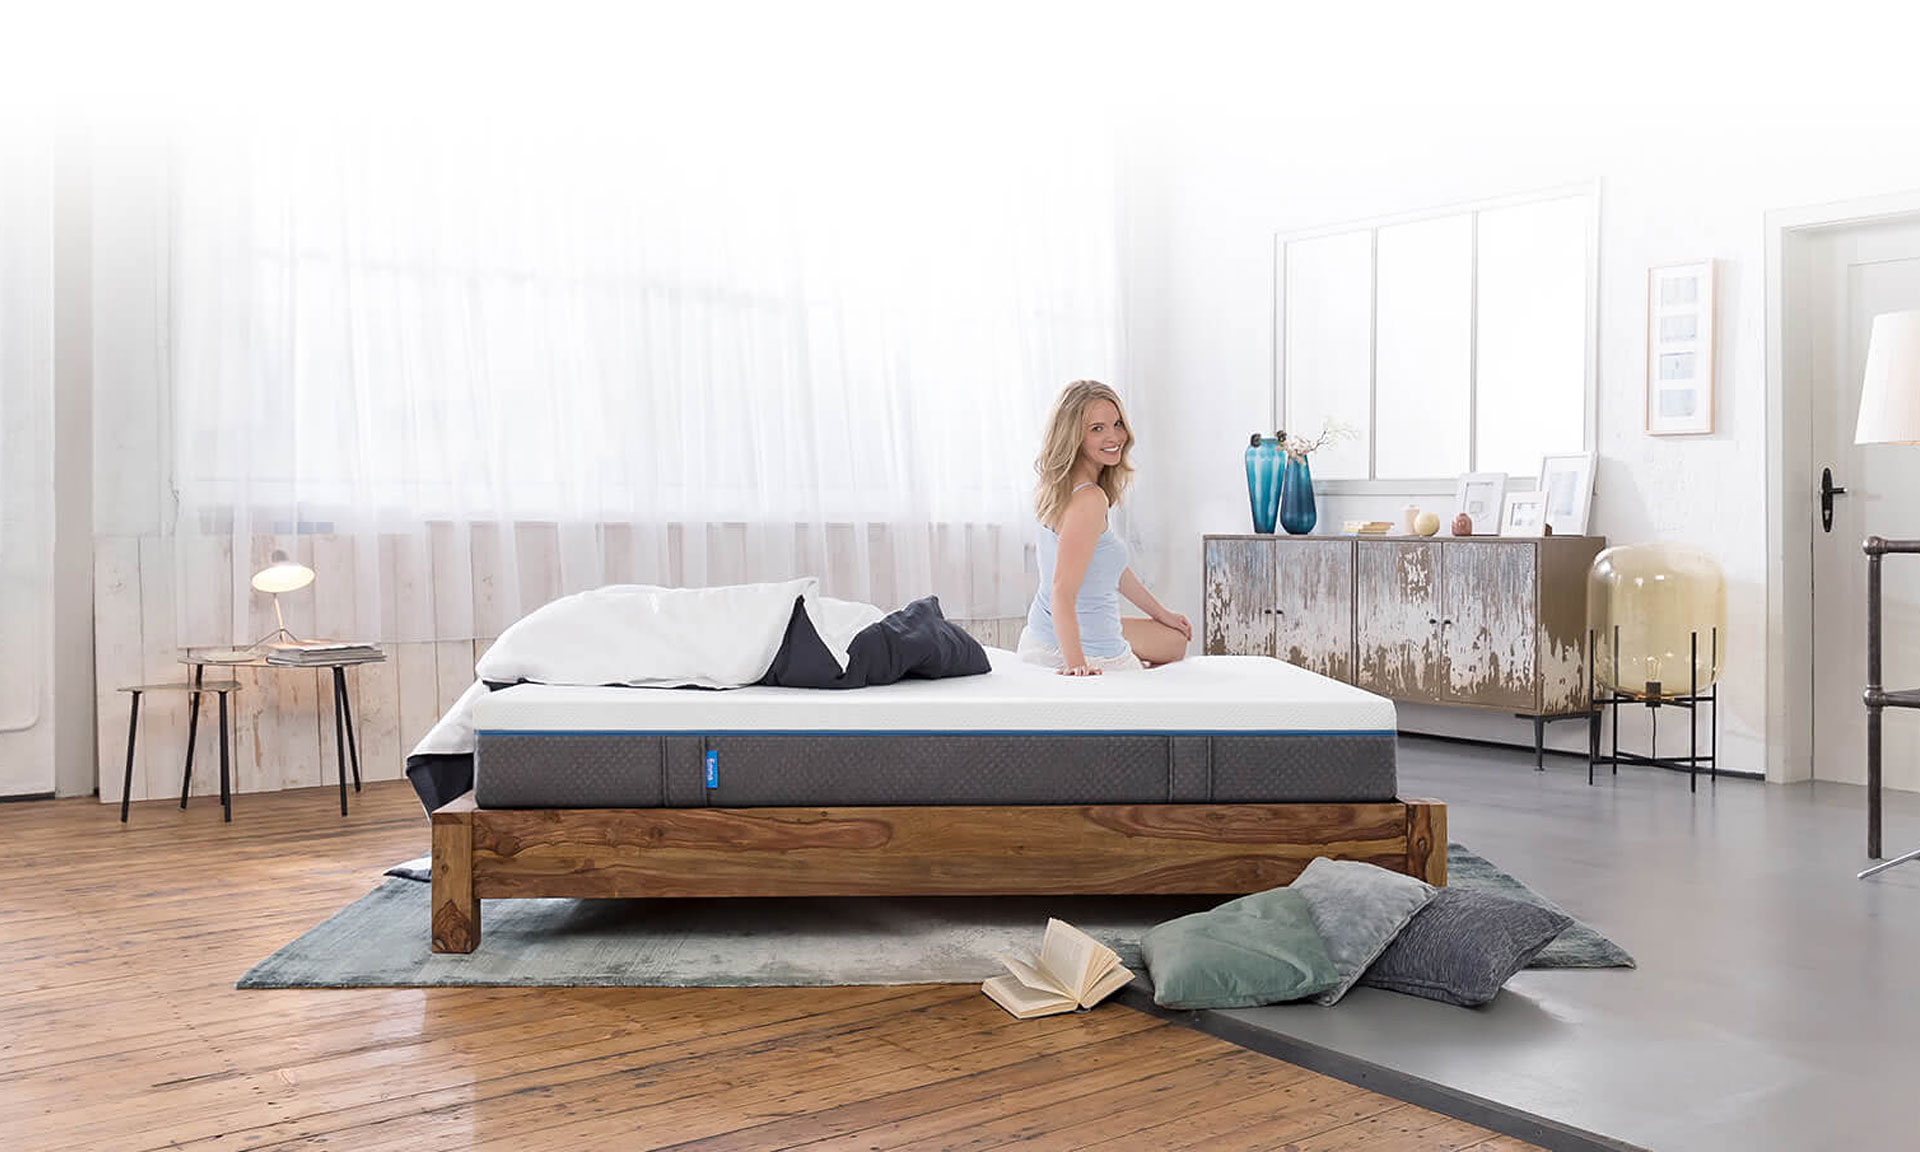 Lady sitting on Emma mattress bed in bedroom